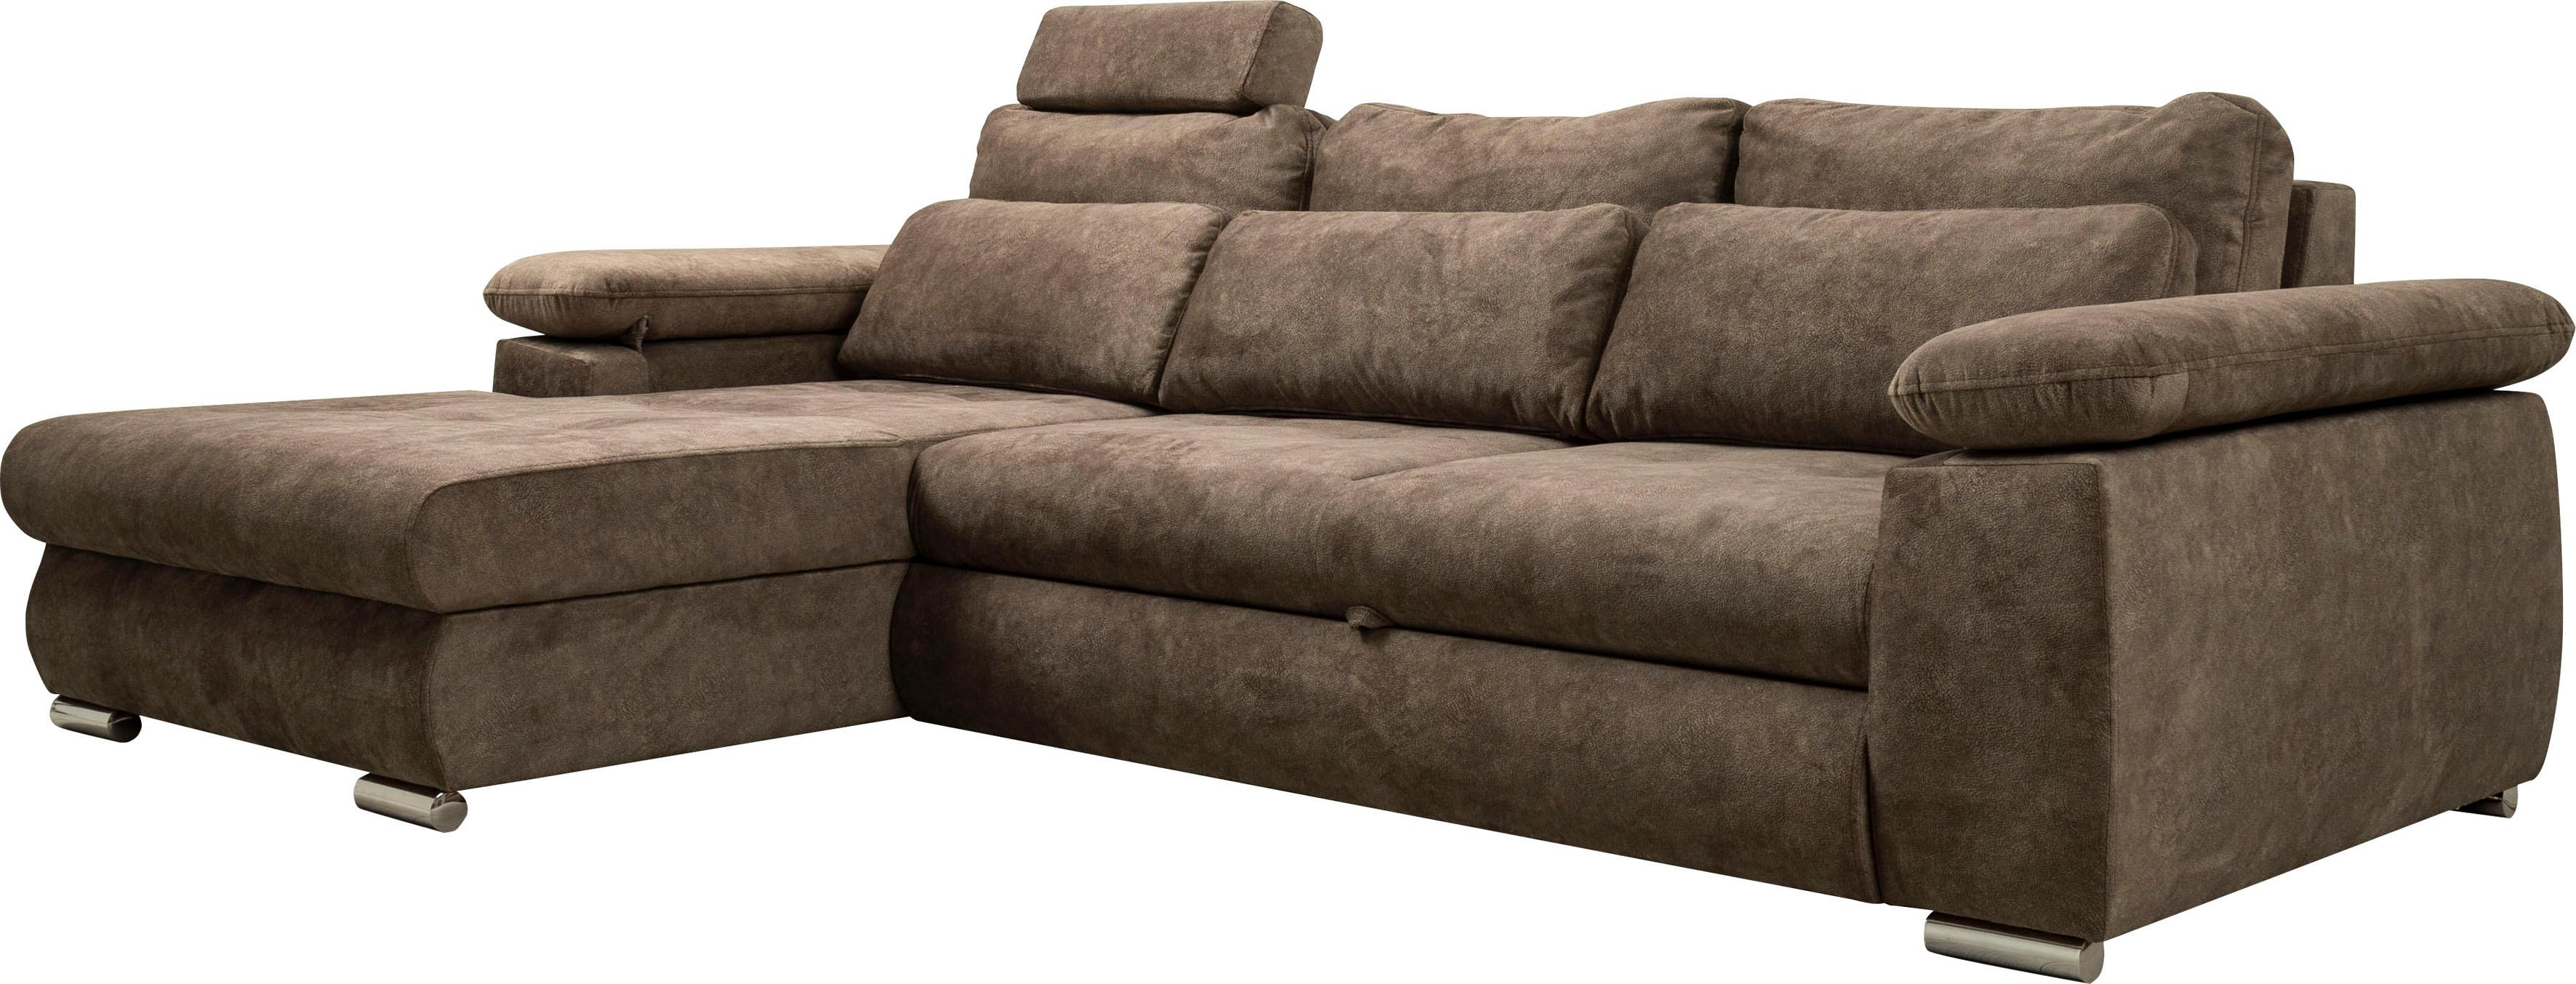 Home affaire Ecksofa Cork (mit Bettfunktion und Bettkasten)